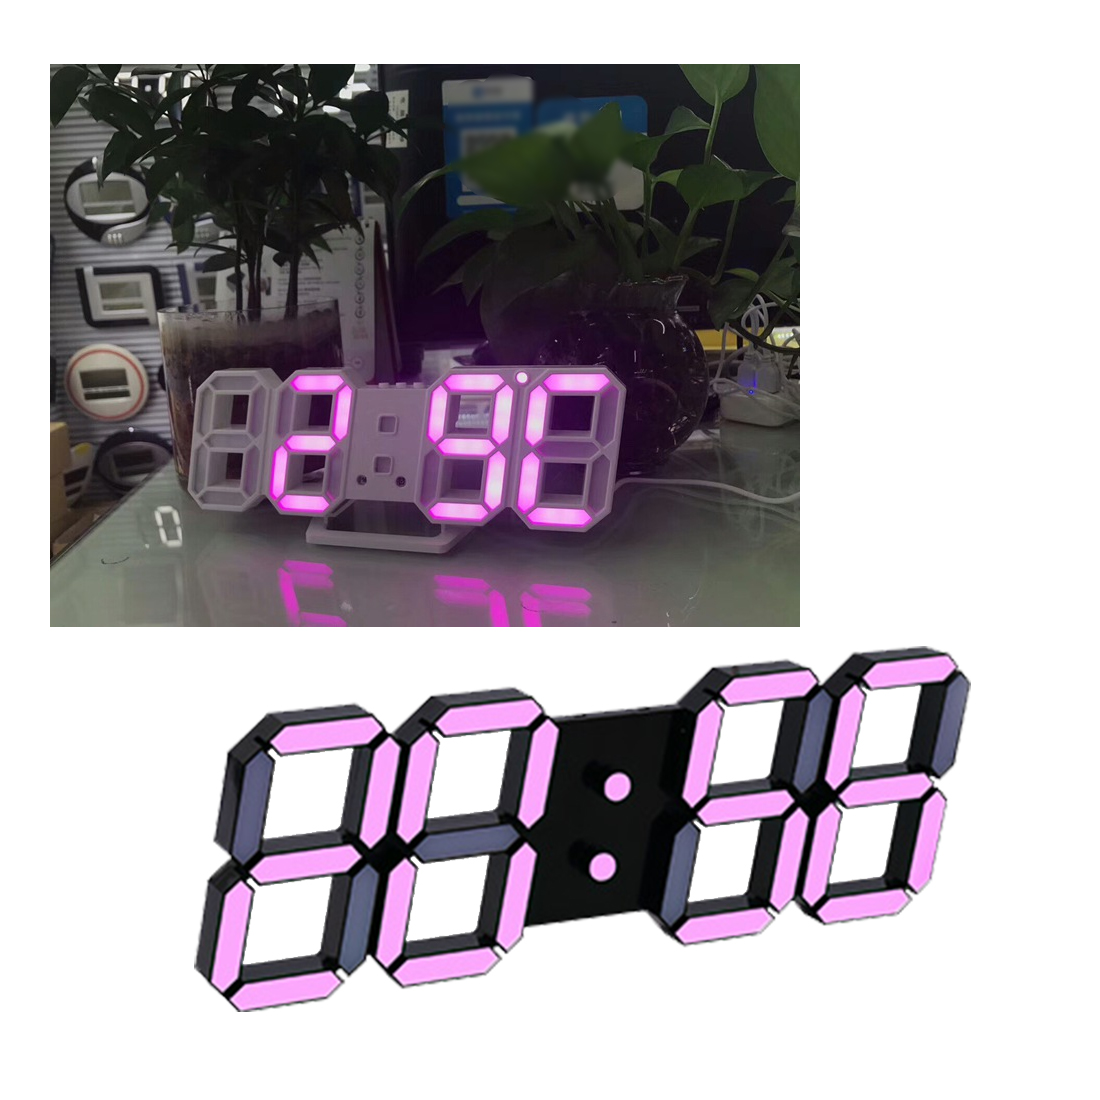 Newest Modern Wall Clock Digital LED Table Clock Watches 24 Or 12-Hour Display Clock Mechanism Alarm Desk Alarm Clock